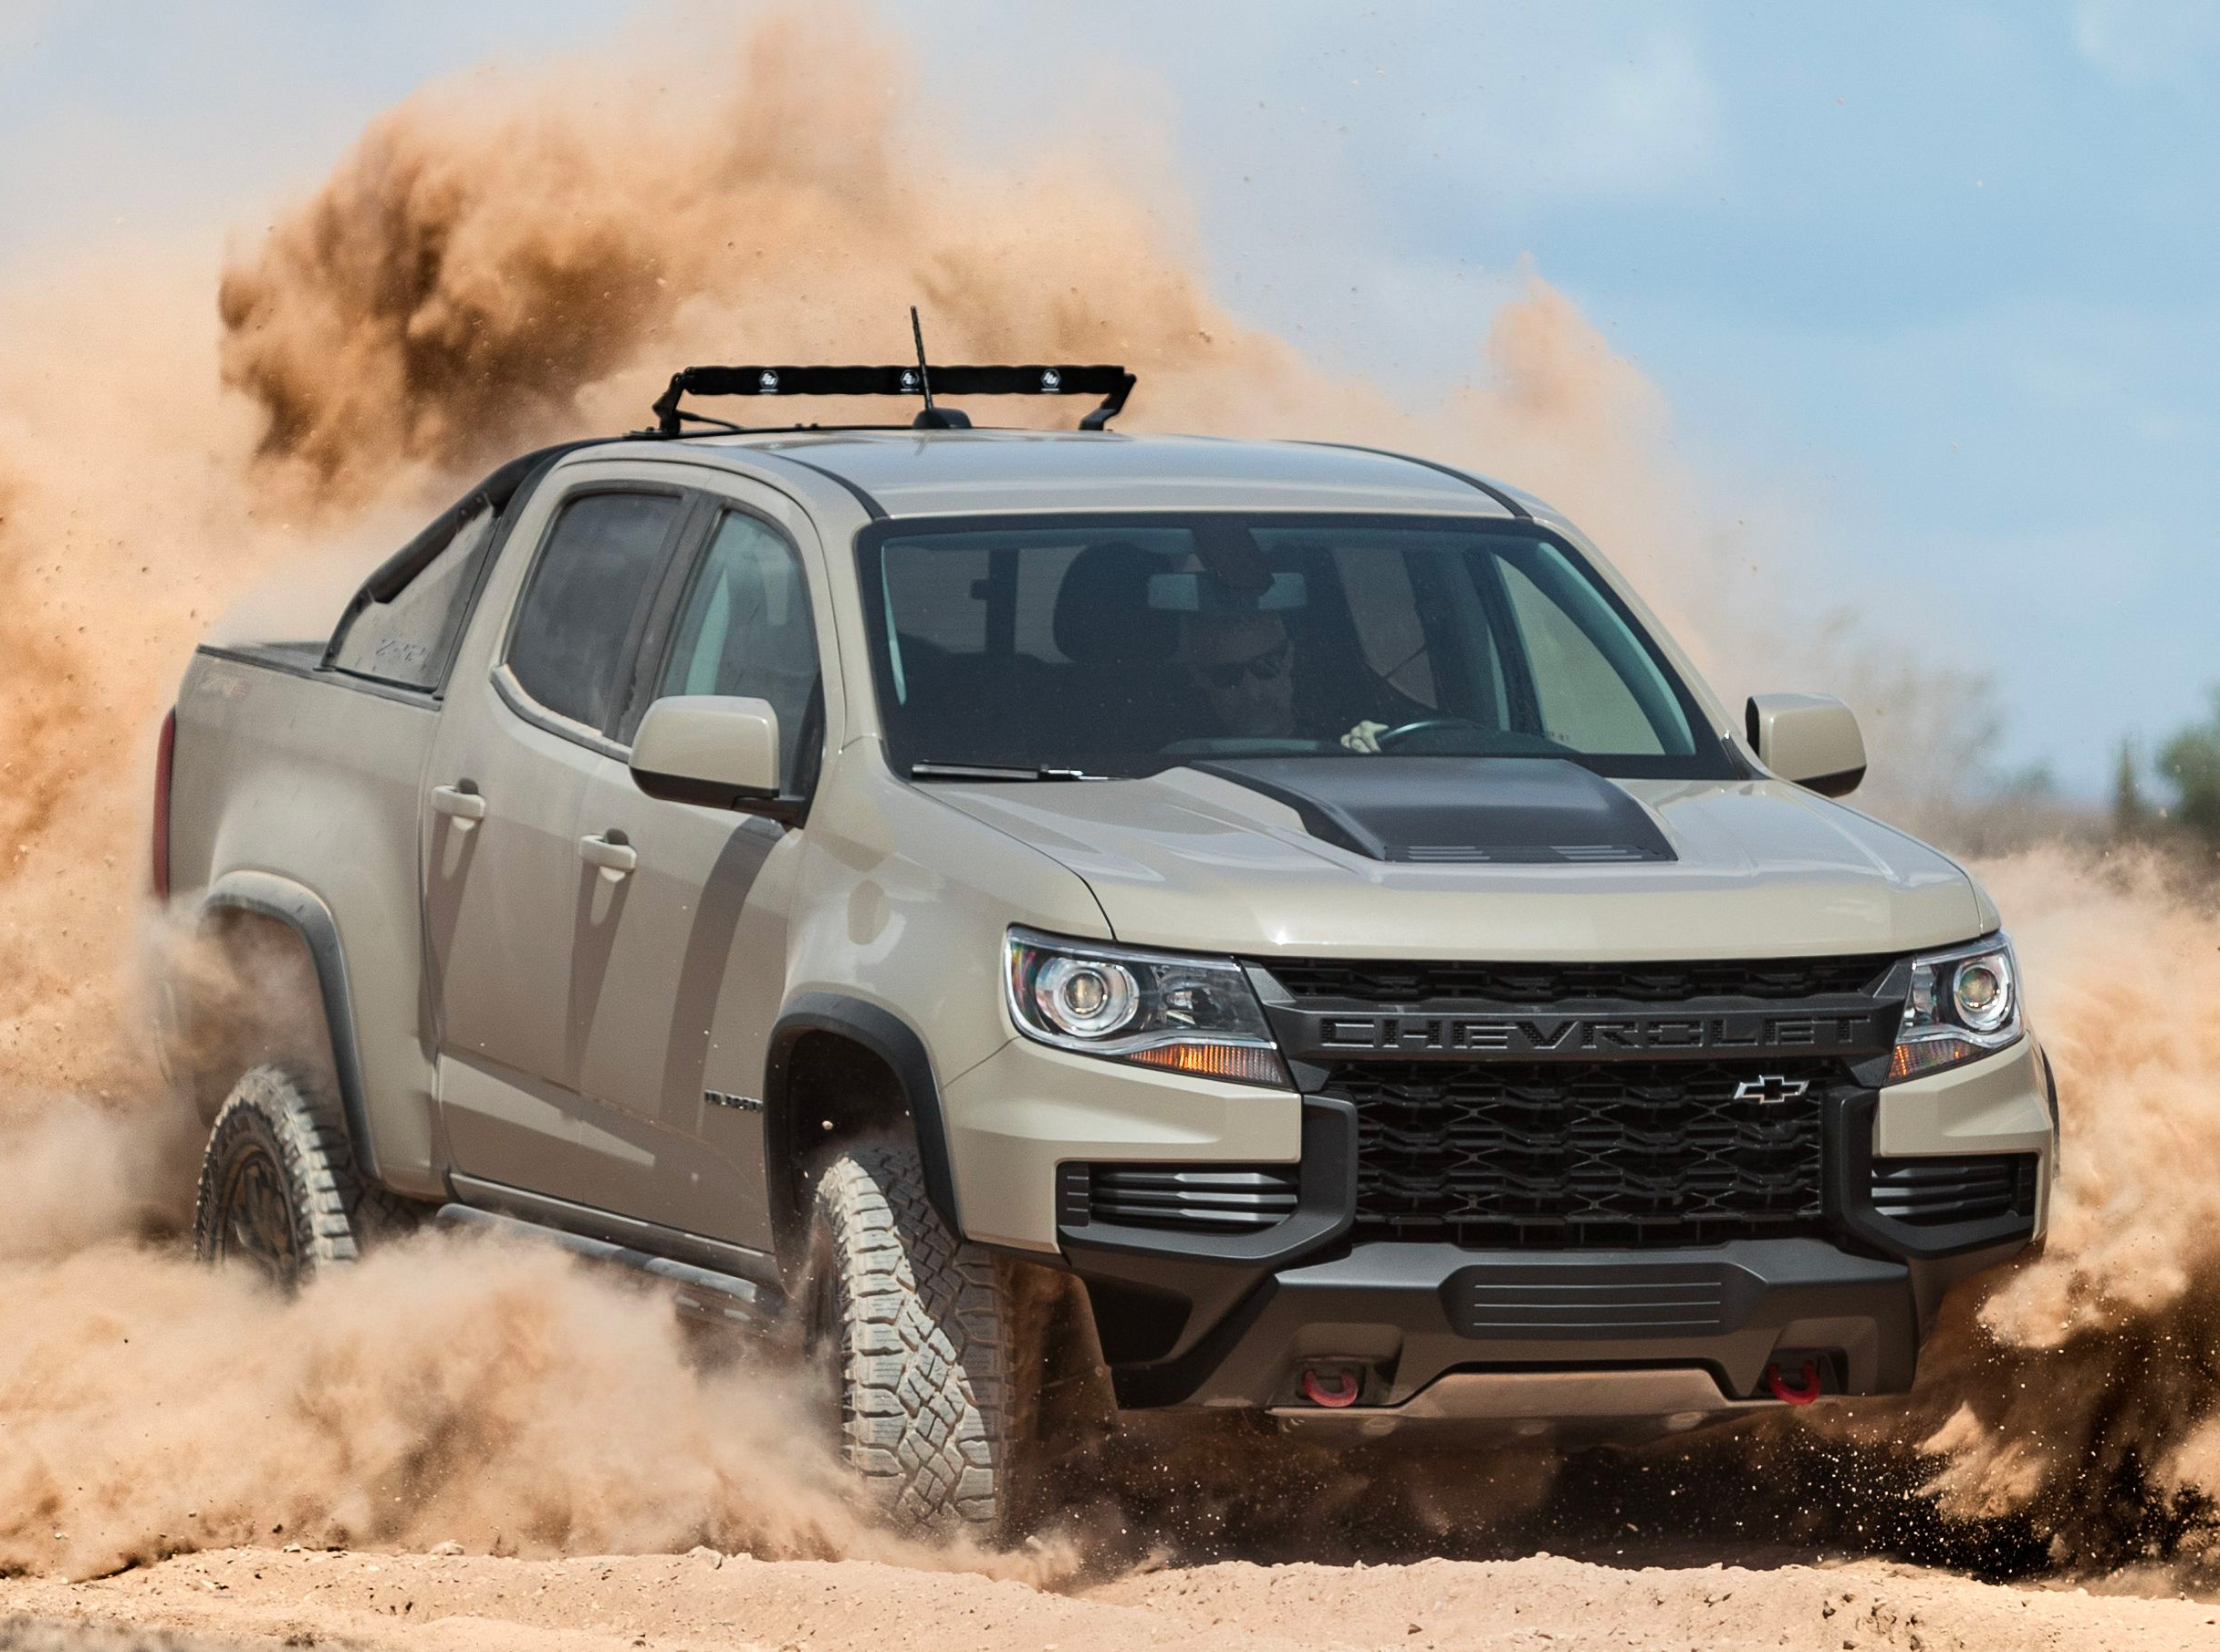 For 2021, the Chevy Colorado Got a Nose Job at werd.com